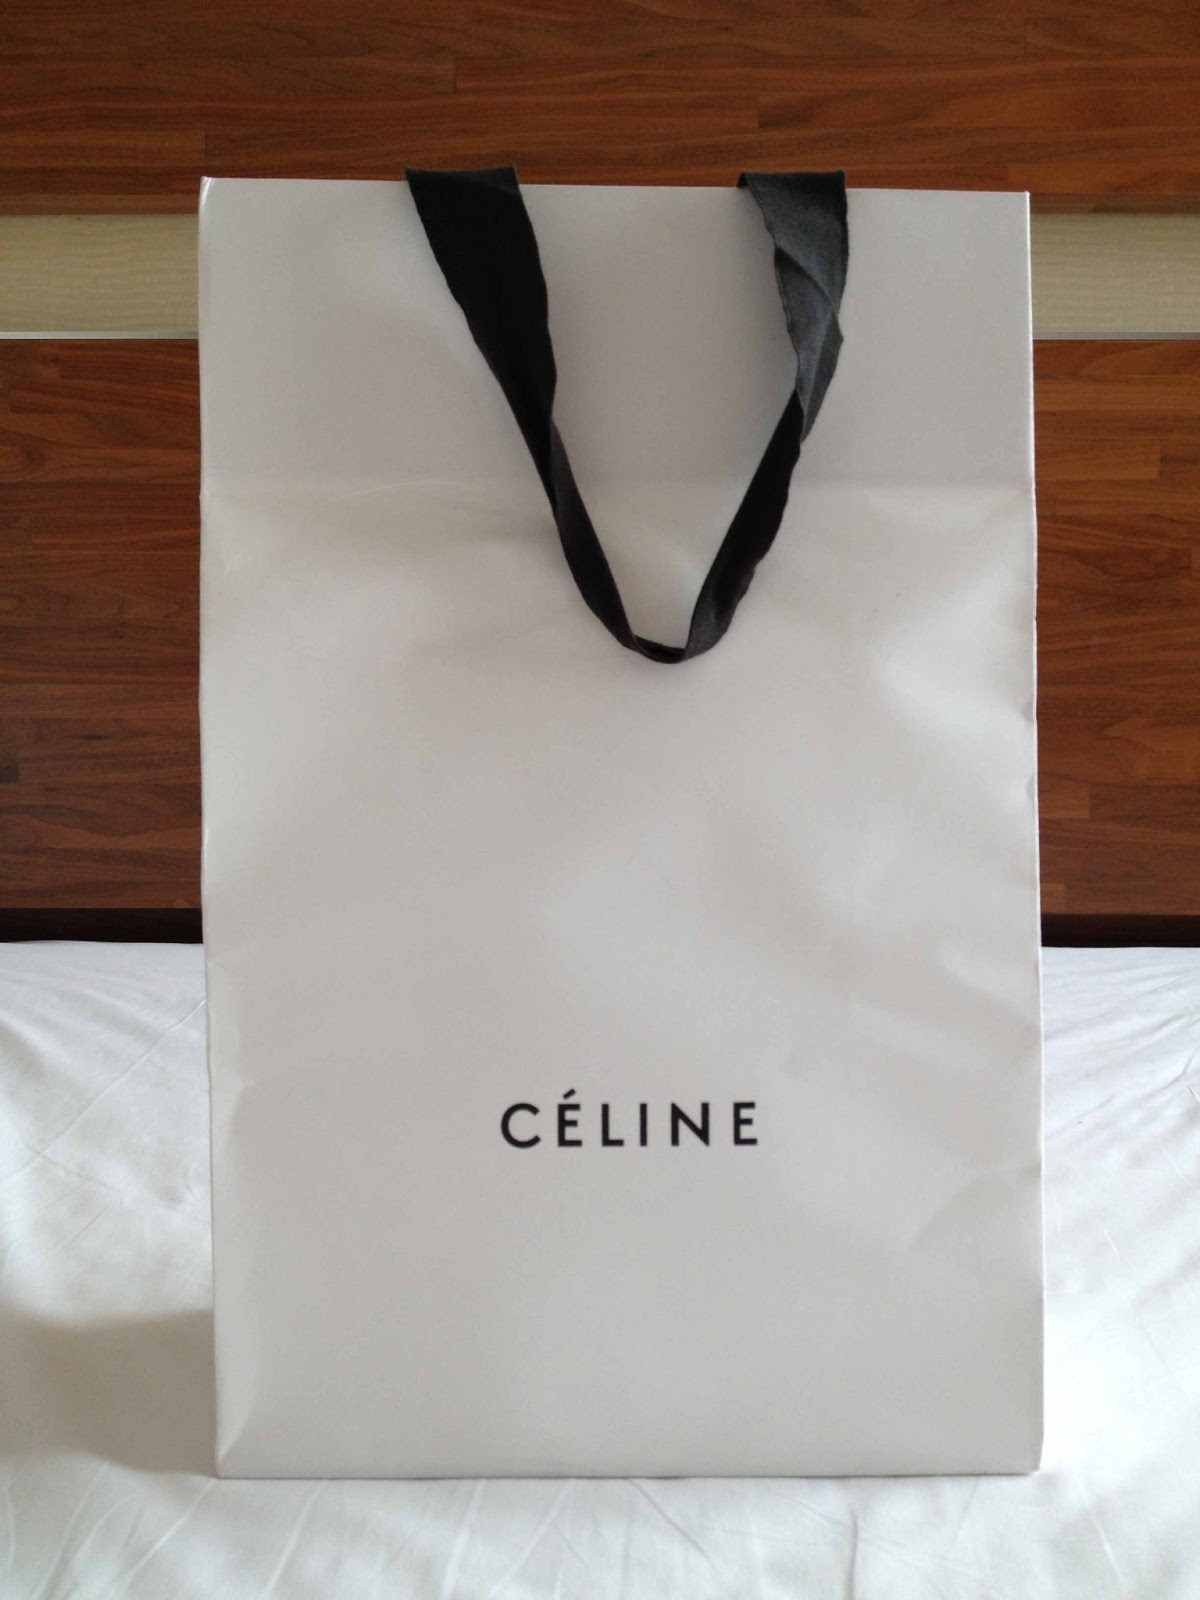 ... shopping list  the trio. So on the very first day we arrived, I dragged  Hubby to the Céline boutique in Landmark Central and came home with this  baby. ae8f7ef2c1